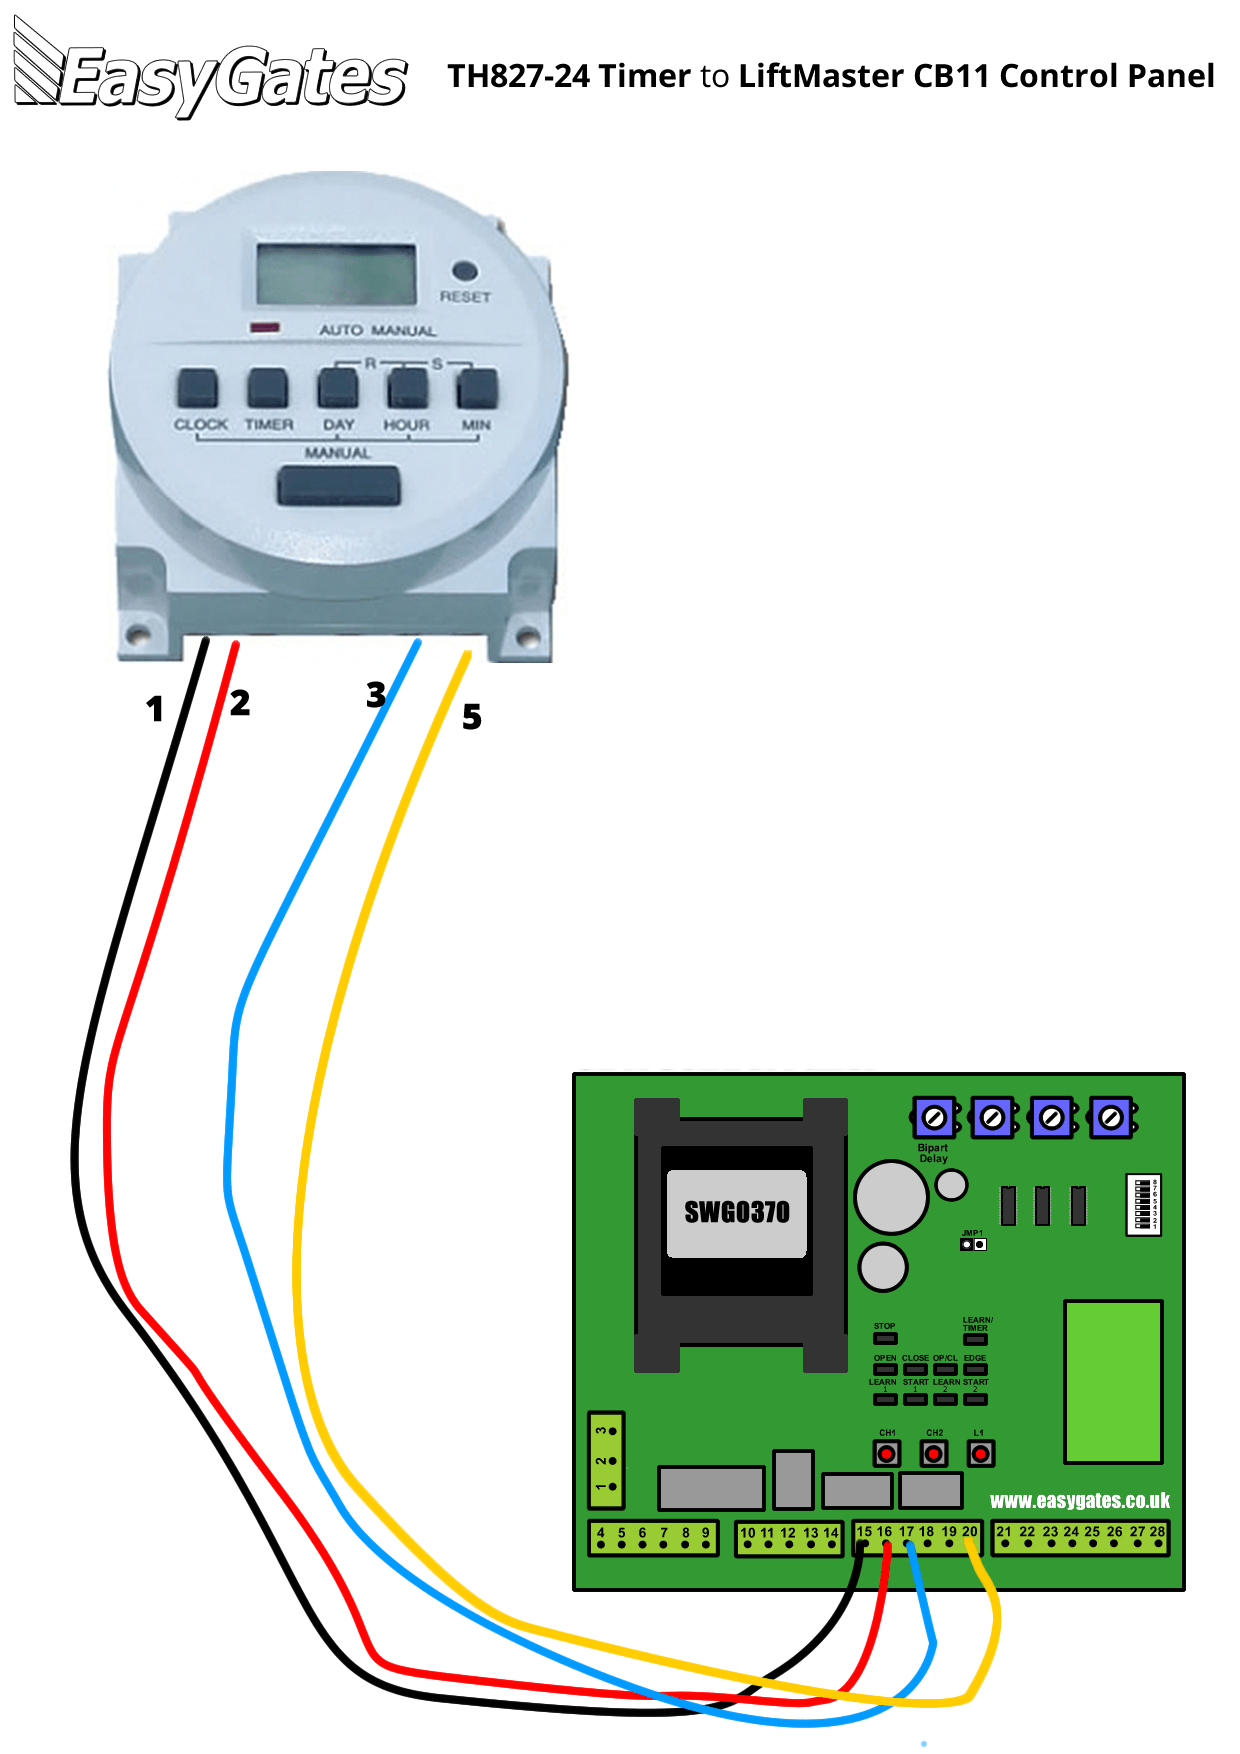 liftmaster wiring diagrams online wiring diagram datawiring diagram for connecting th827 24 timer to liftmaster cb11